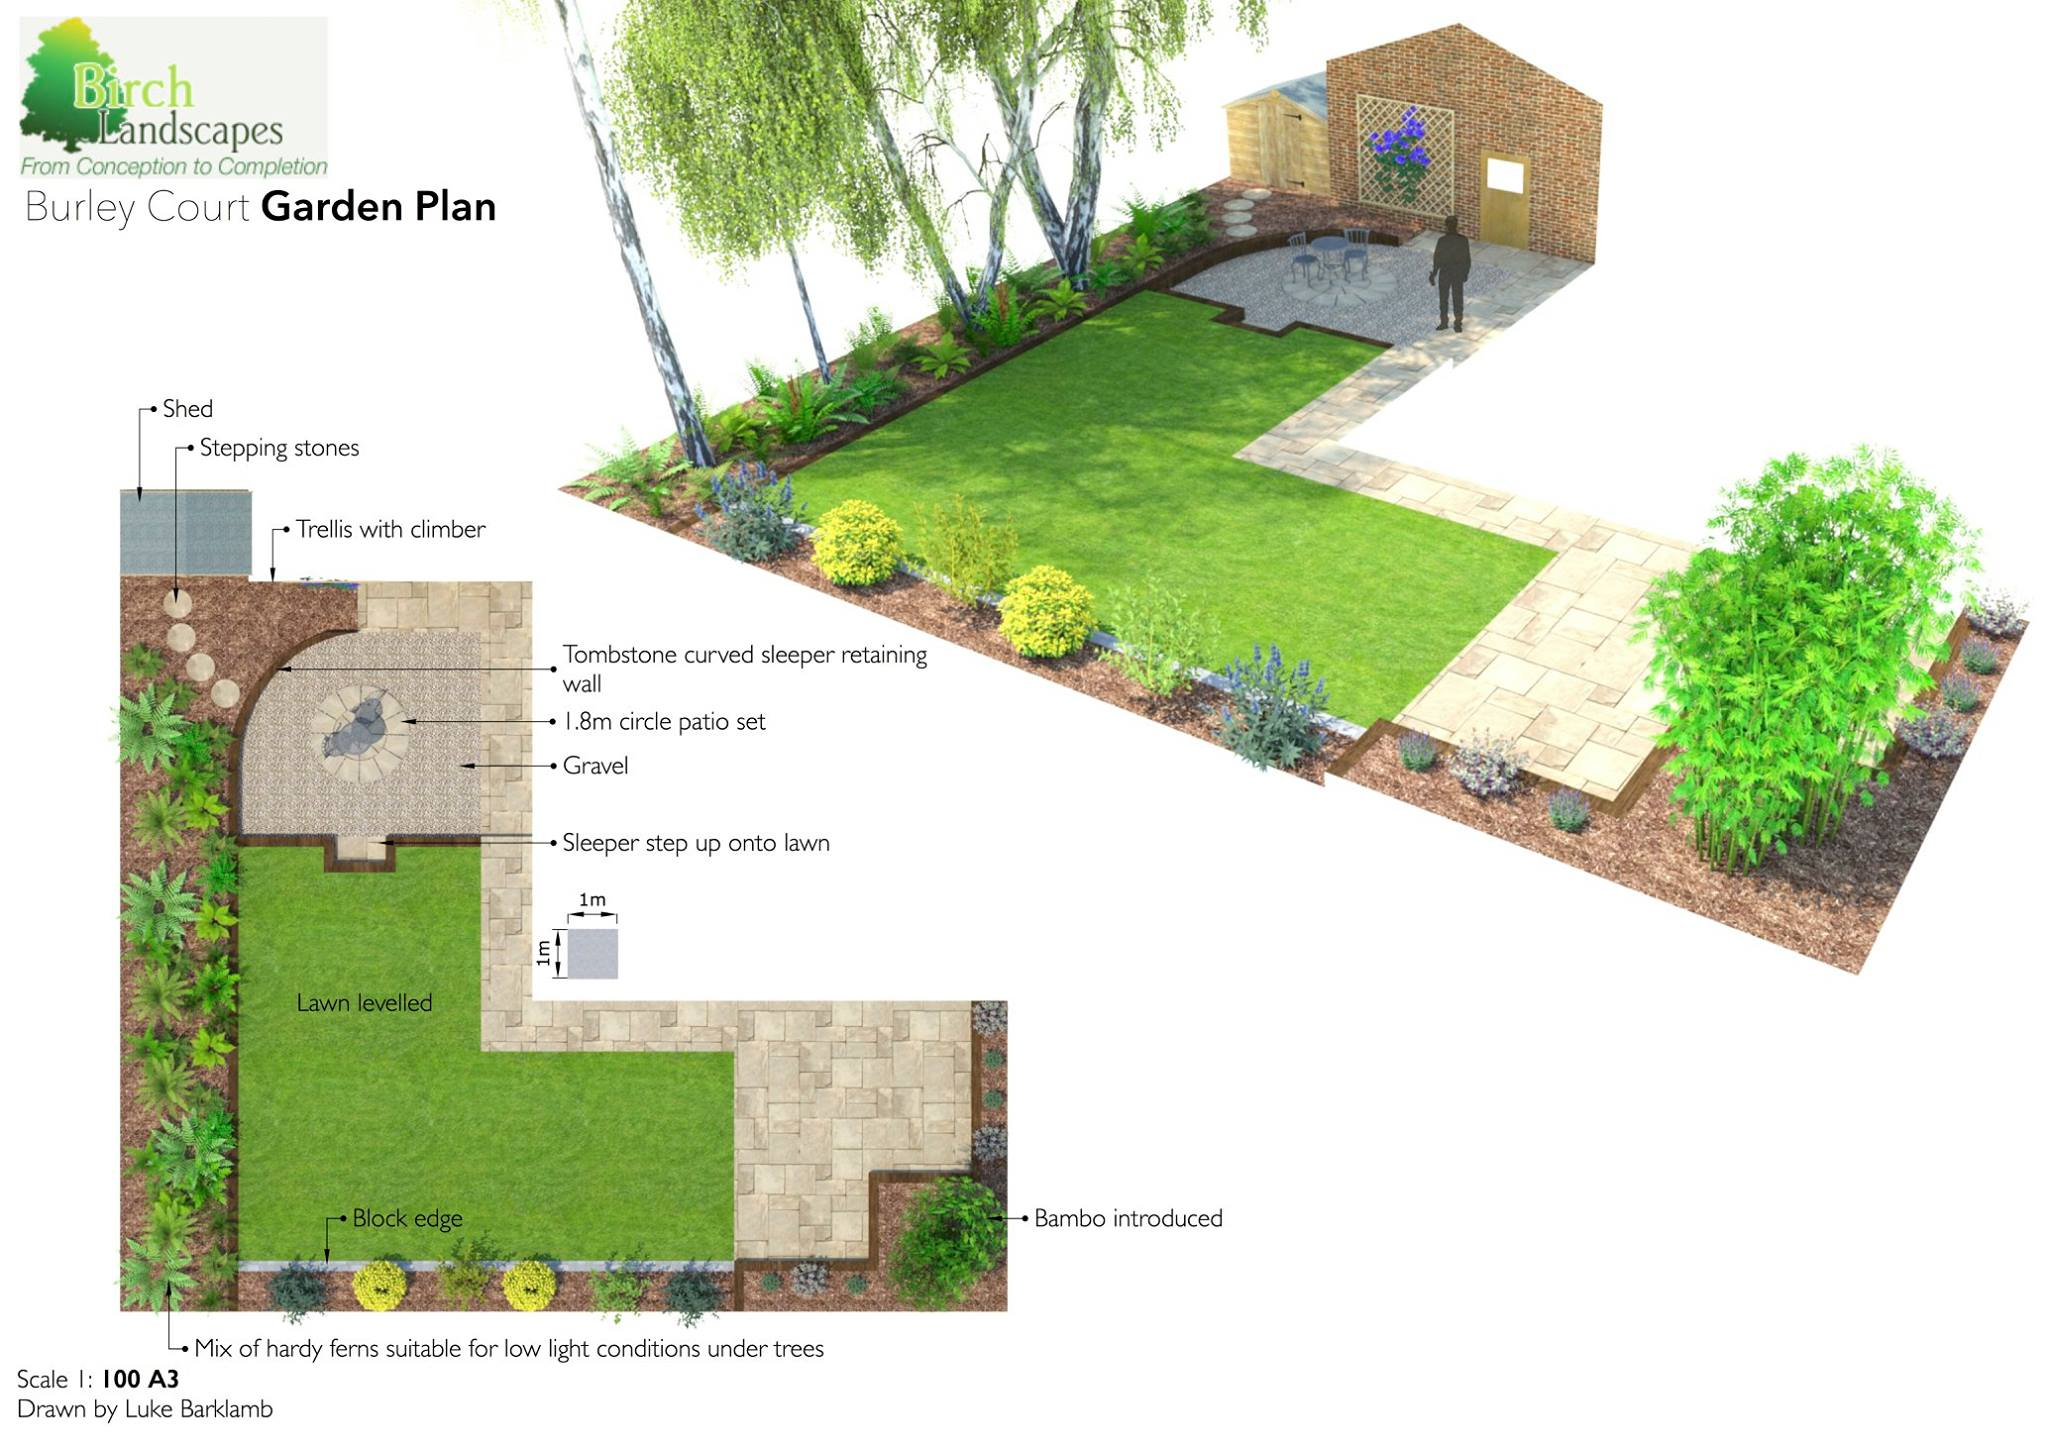 Garden Design in Milton Keynes - Birch Landscapes